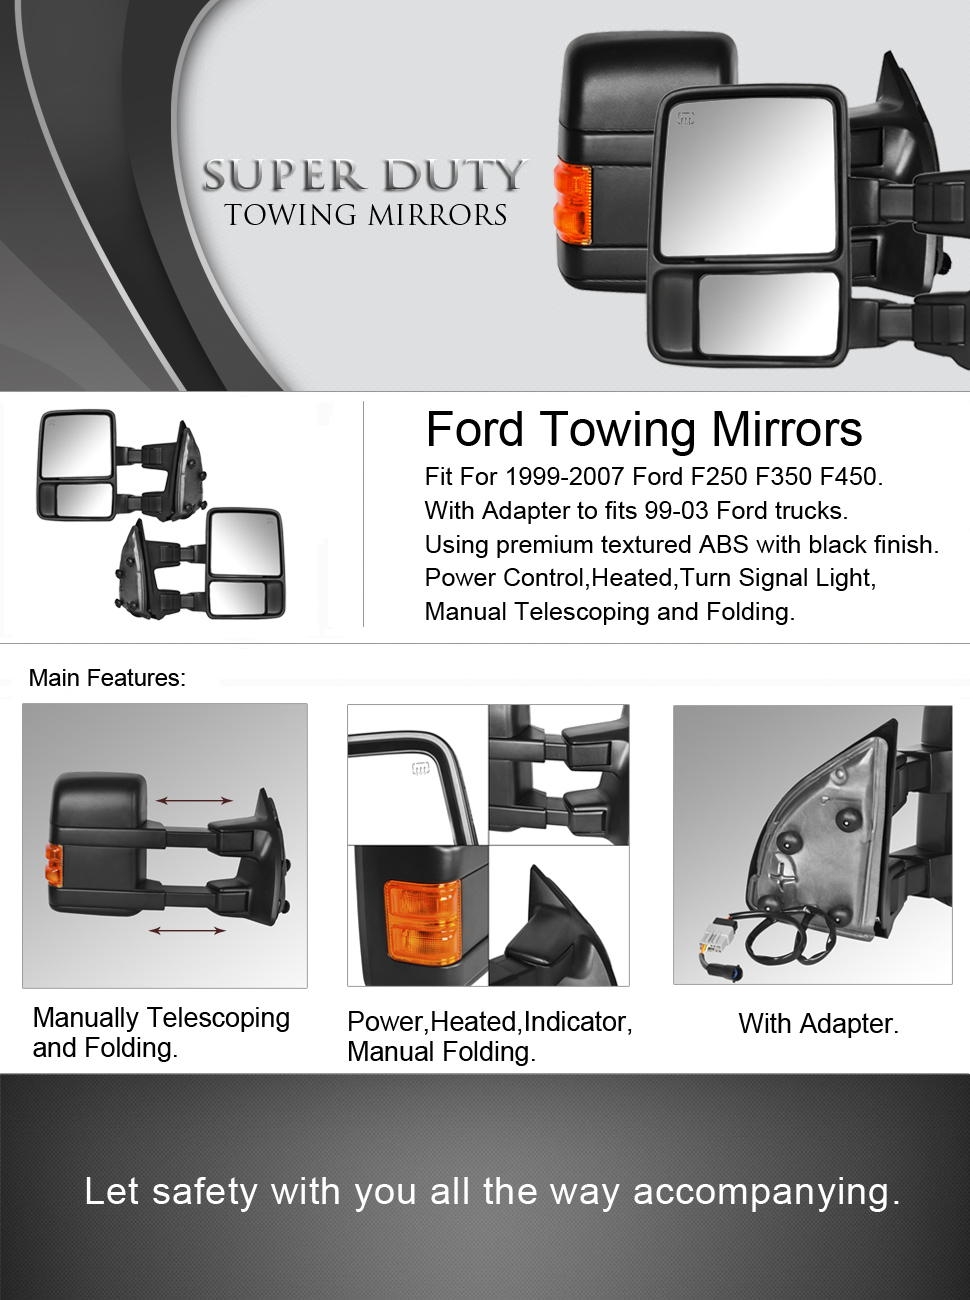 3e4EMyExQyWq._UX970_TTW_ amazon com dedc ford towing mirrors f250 ford tow mirrors f350  at virtualis.co